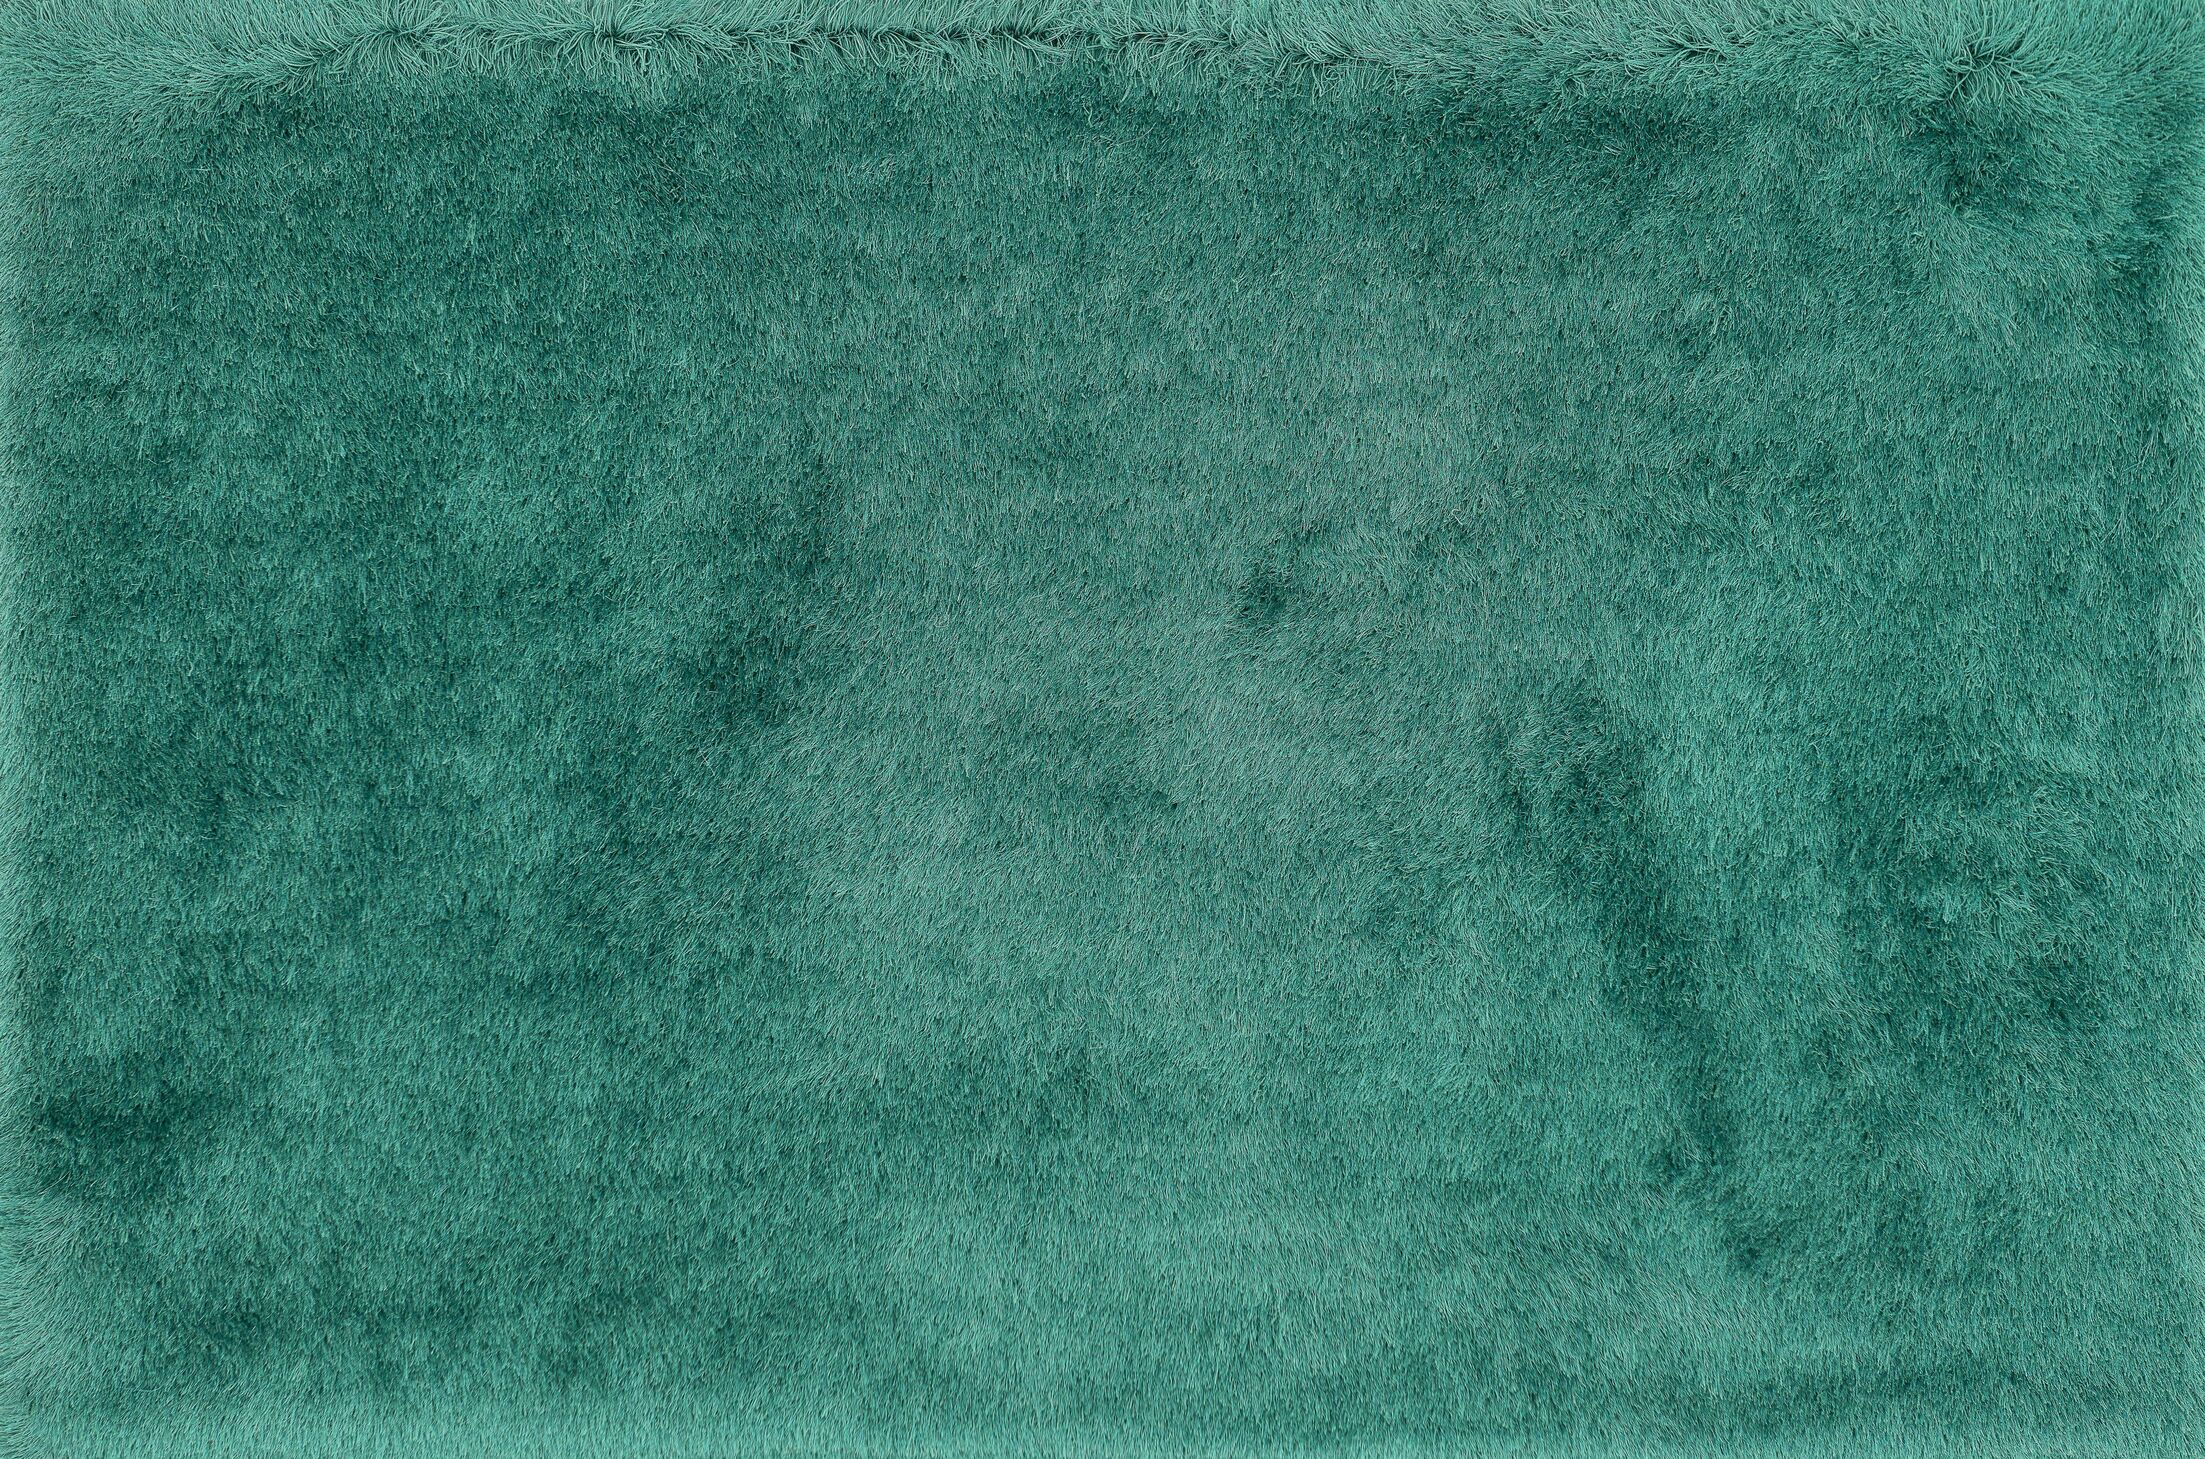 Hersi Hand-Tufted Emerald Area Rug Rug Size: Rectangle 5' x 7'6